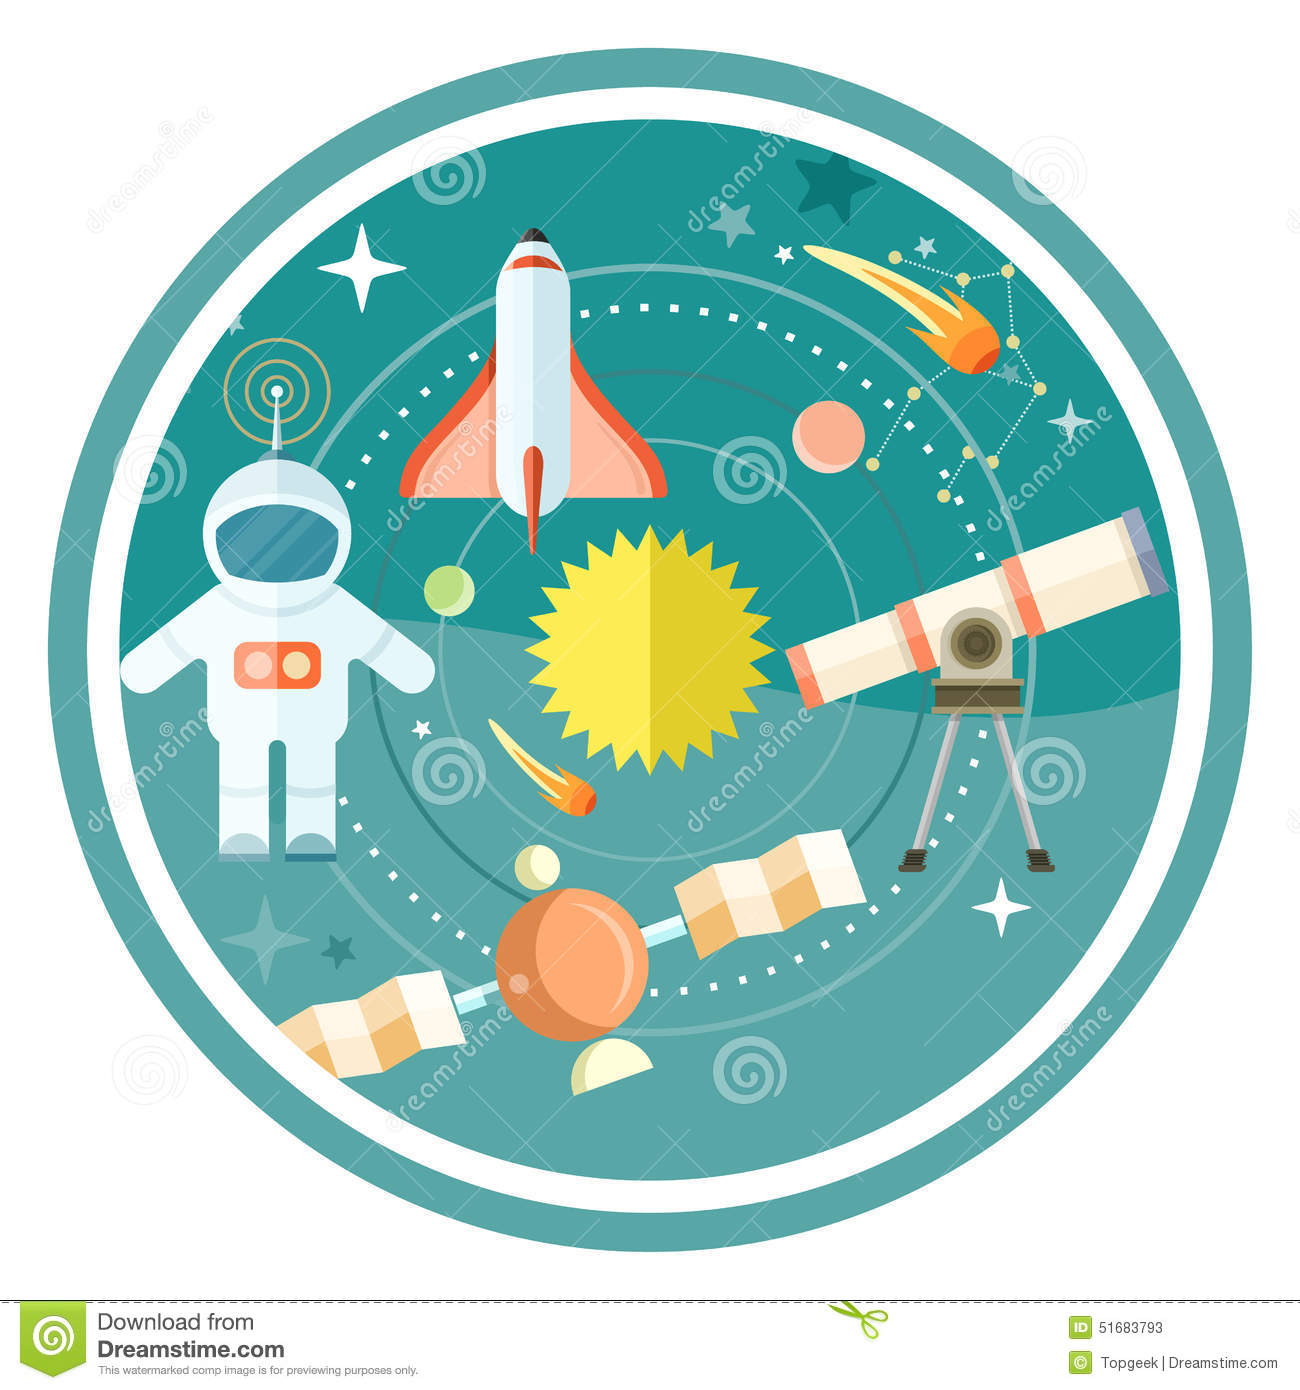 ... astronaut. Concept in flat design cartoon style on stylish background